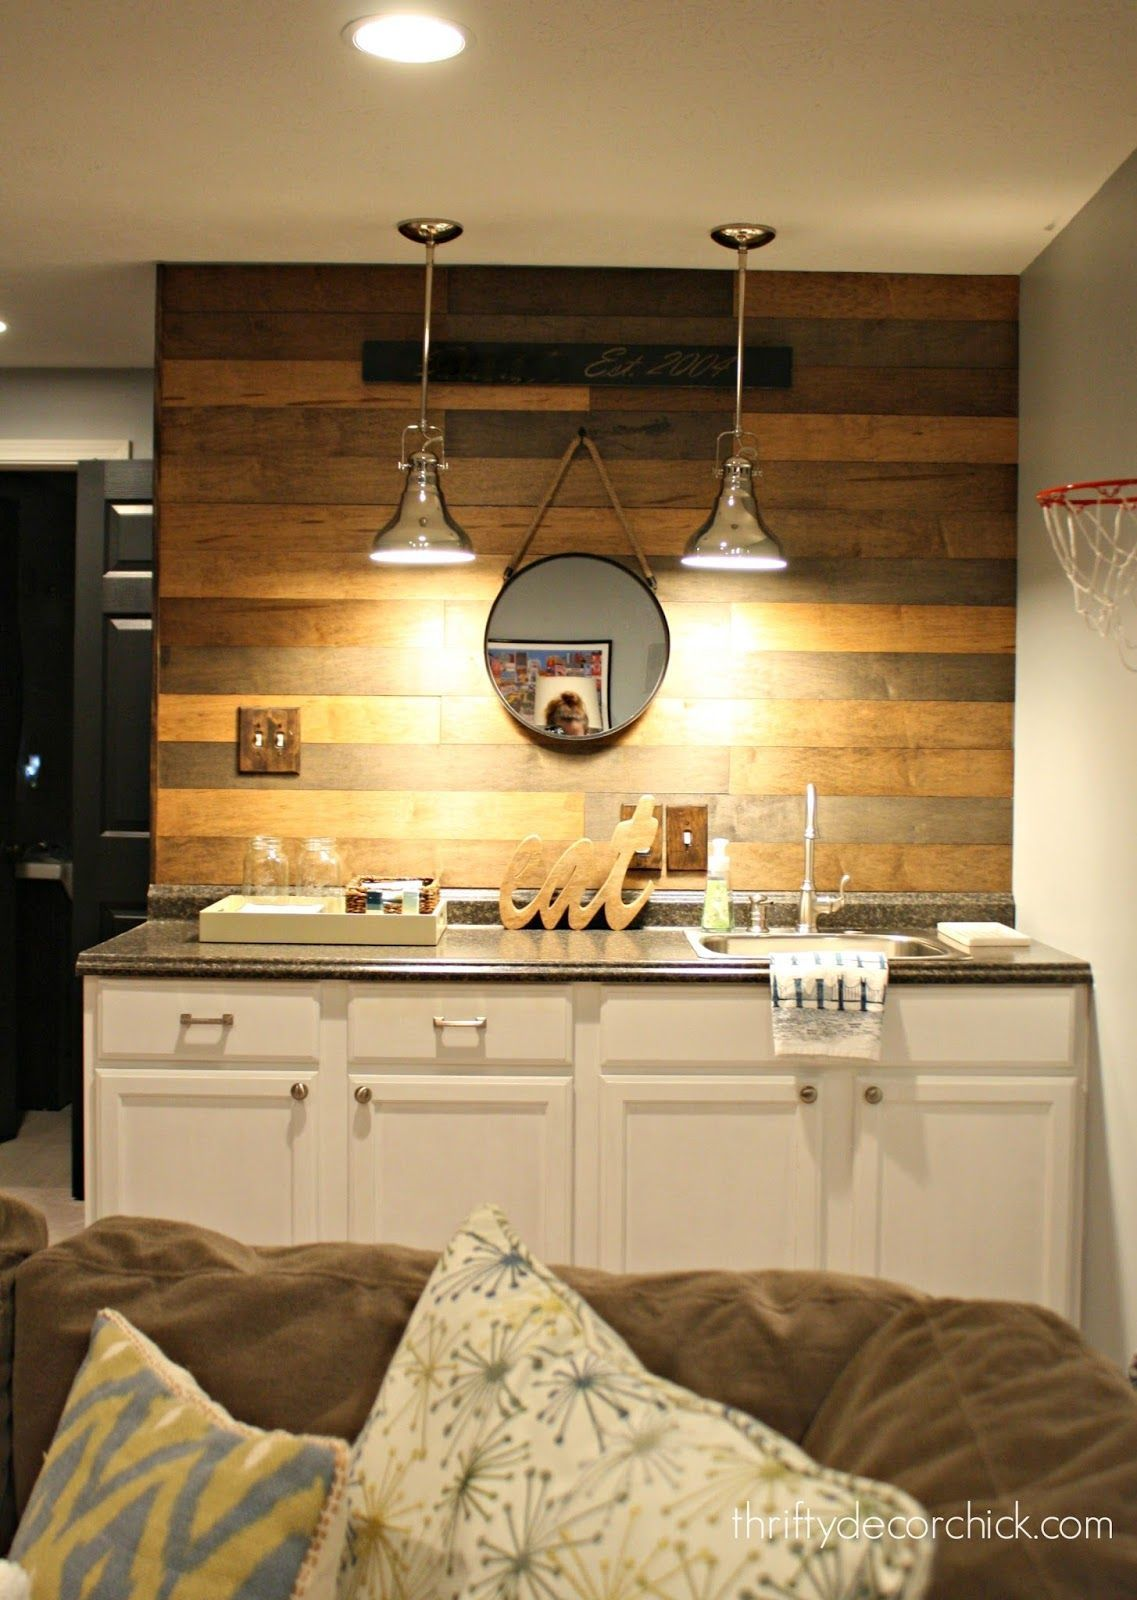 Magnificent Wall Bar Ideas Pictures - All About Wallart - adelgazare ...